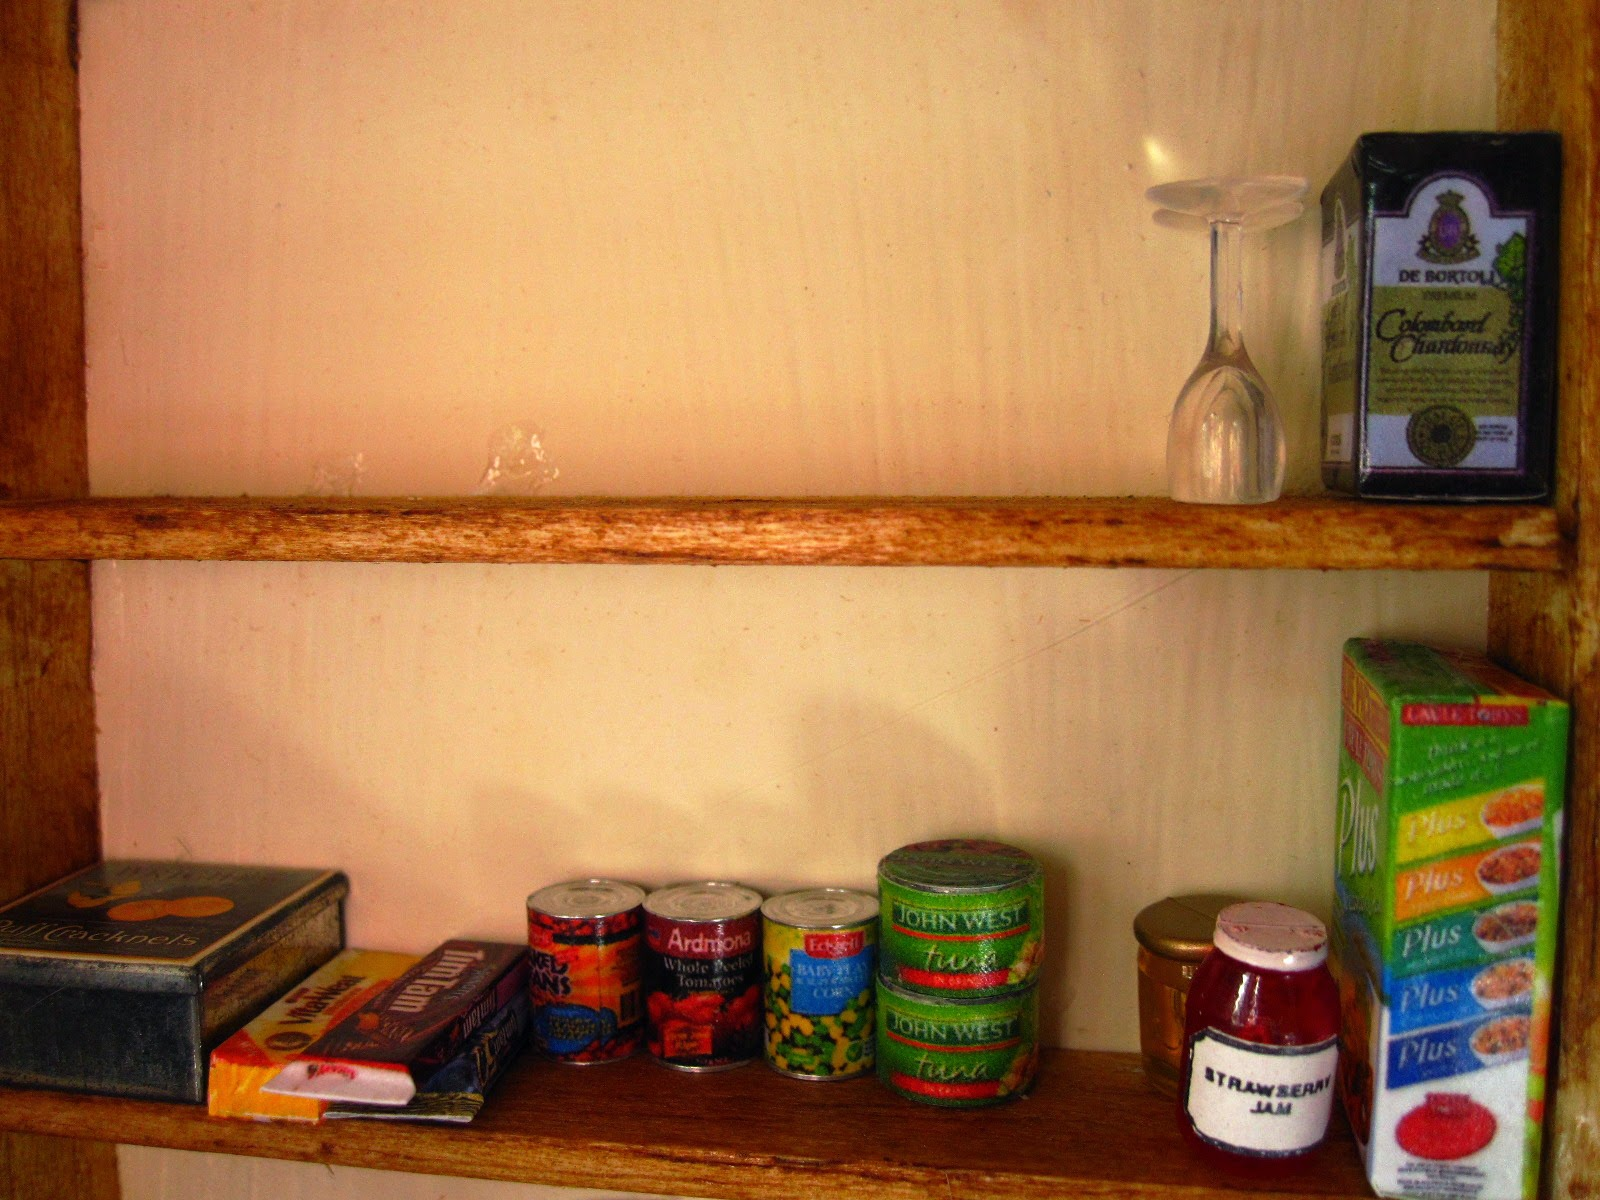 A selection of modern miniature groceries arranged on shelves.